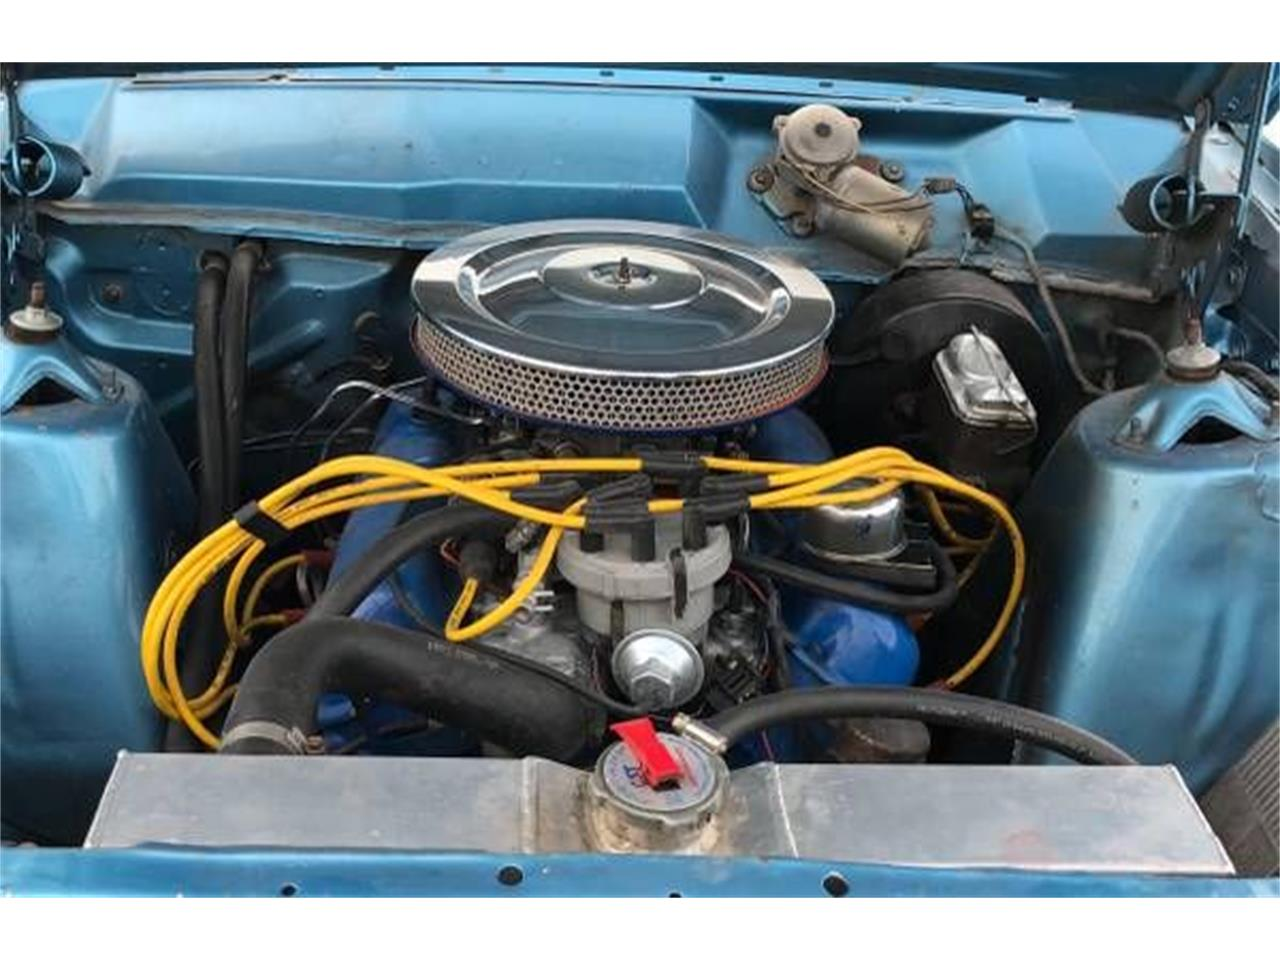 1967 Ford Falcon for sale in Cadillac, MI – photo 17